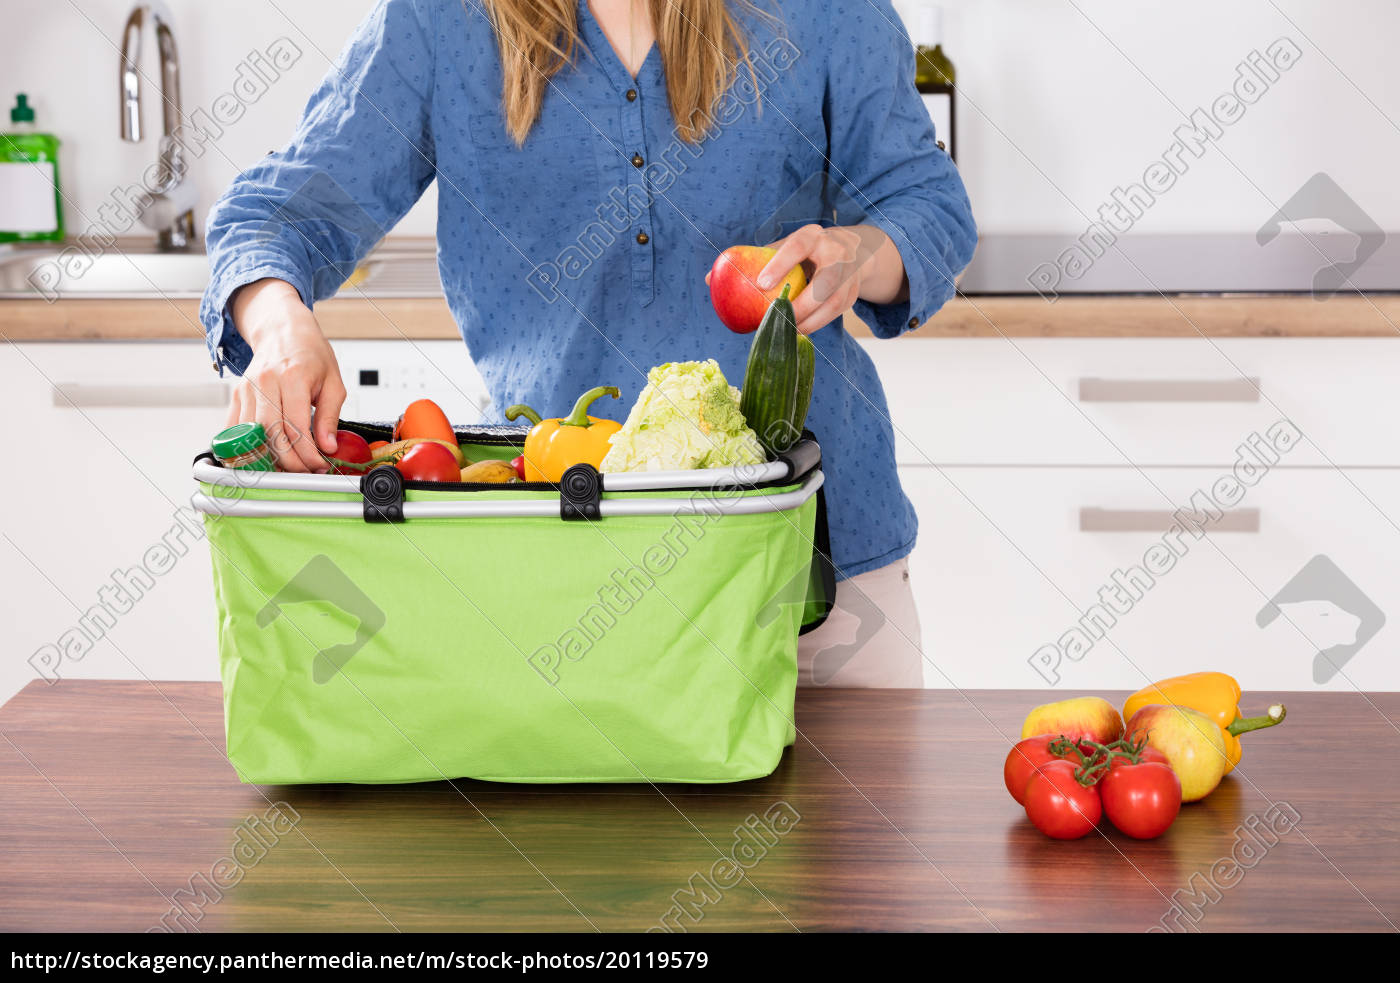 woman, removing, vegetable, from, grocery, bag - 20119579